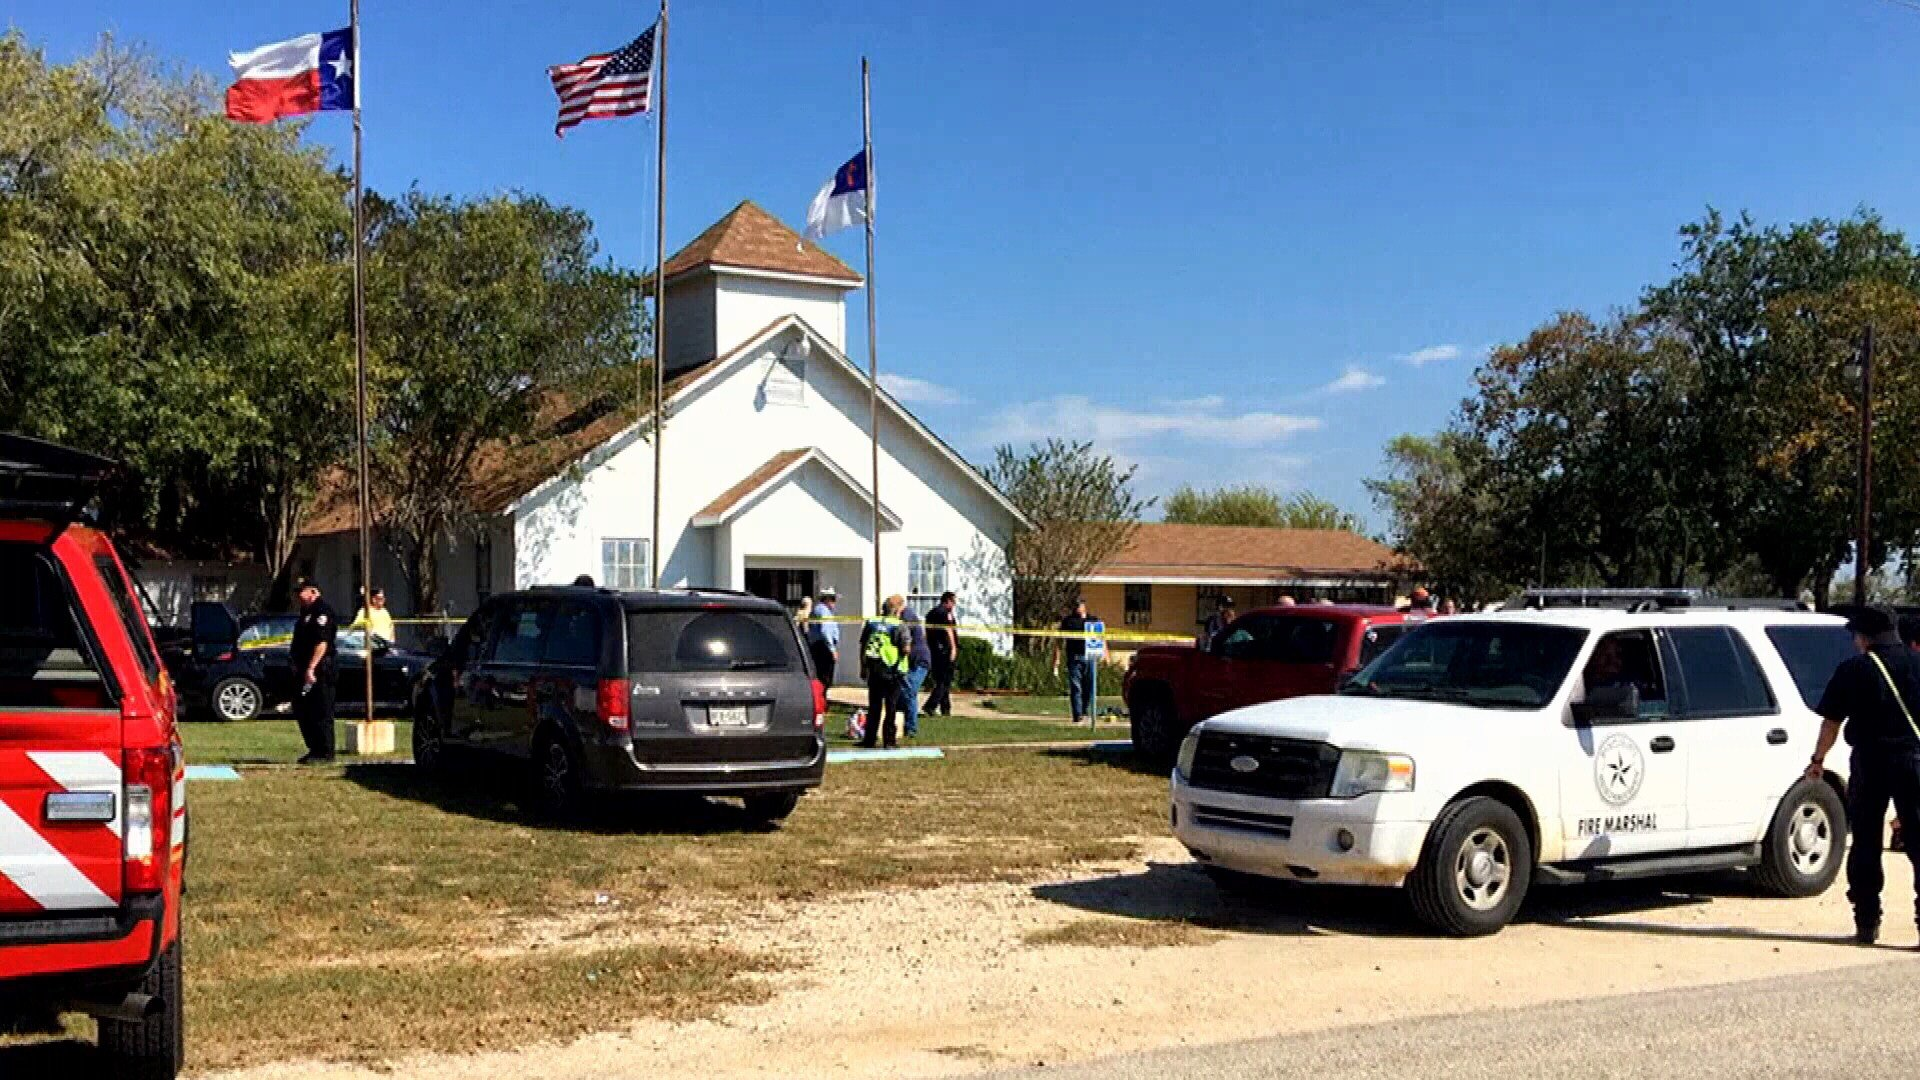 The surviving members of the the congregation in Sutherland Springs will come together for a Sunday service this weekend at the community, the first service since the mass shooting at their church.